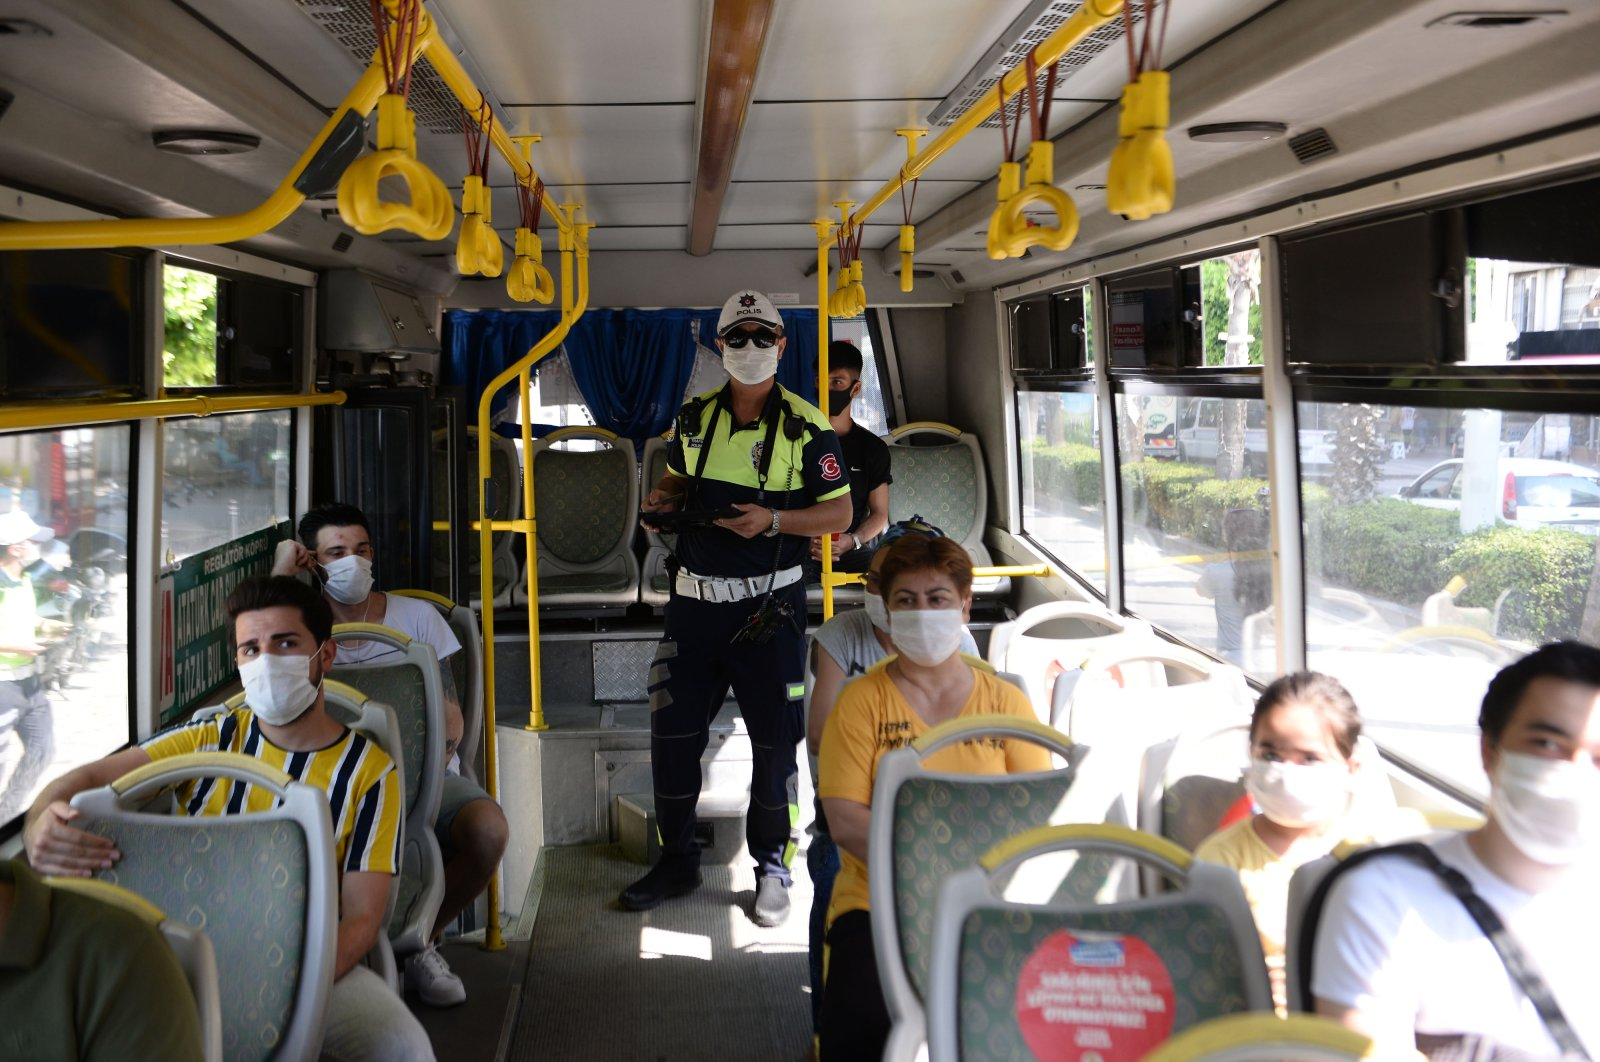 A police officer inspects coronavirus measures in a bus, in Adana, southern Turkey, Aug. 4, 2020. (DHA Photo)